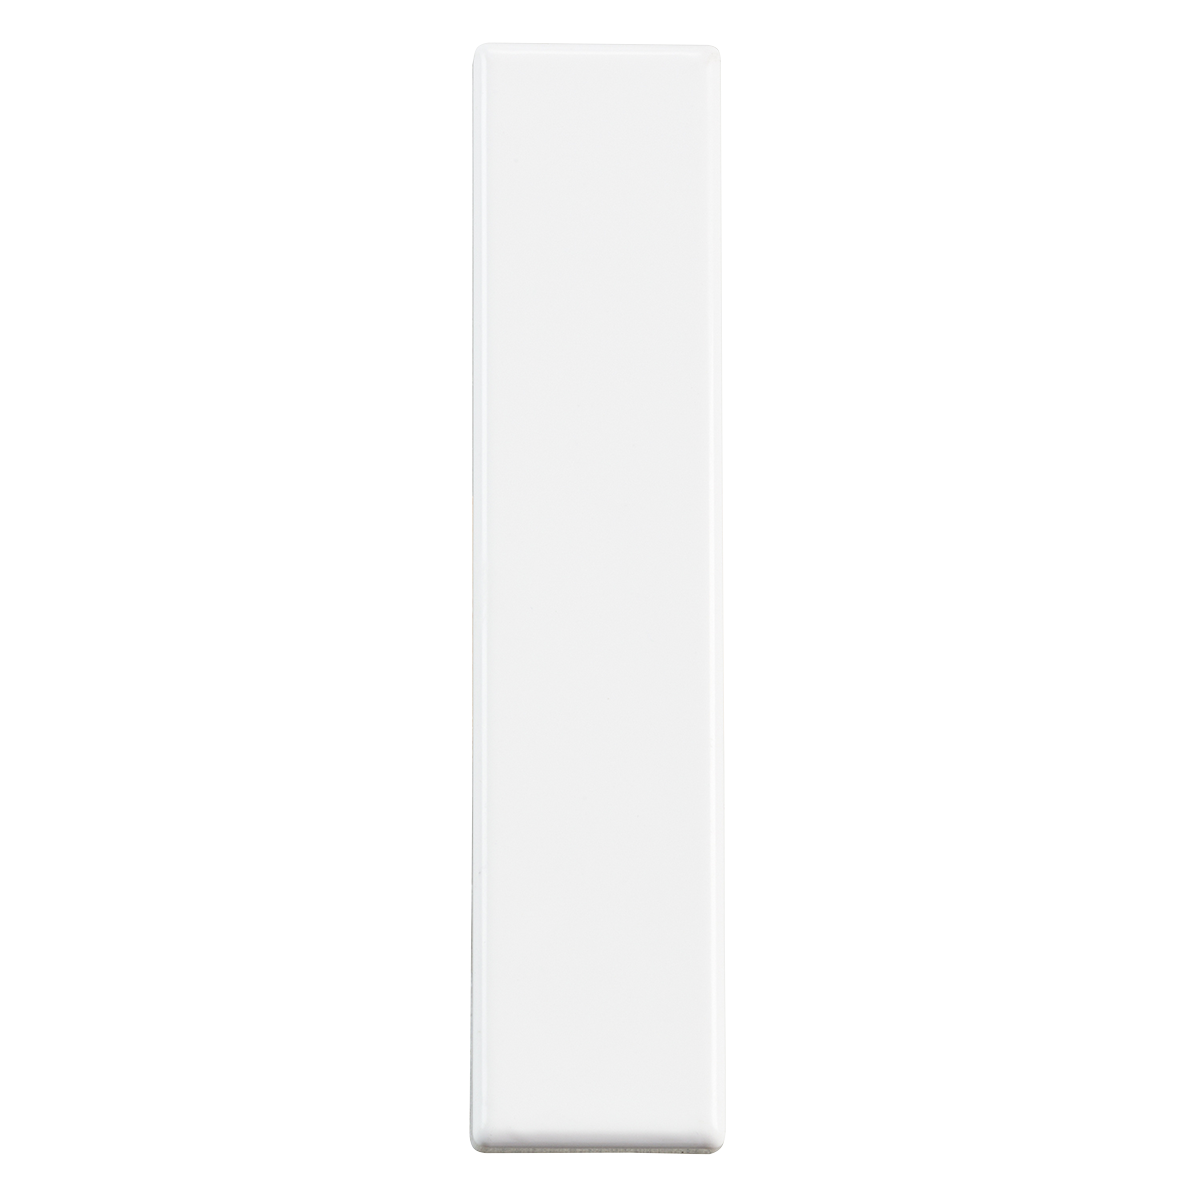 Half white backgrounds fast. Png black background picture free